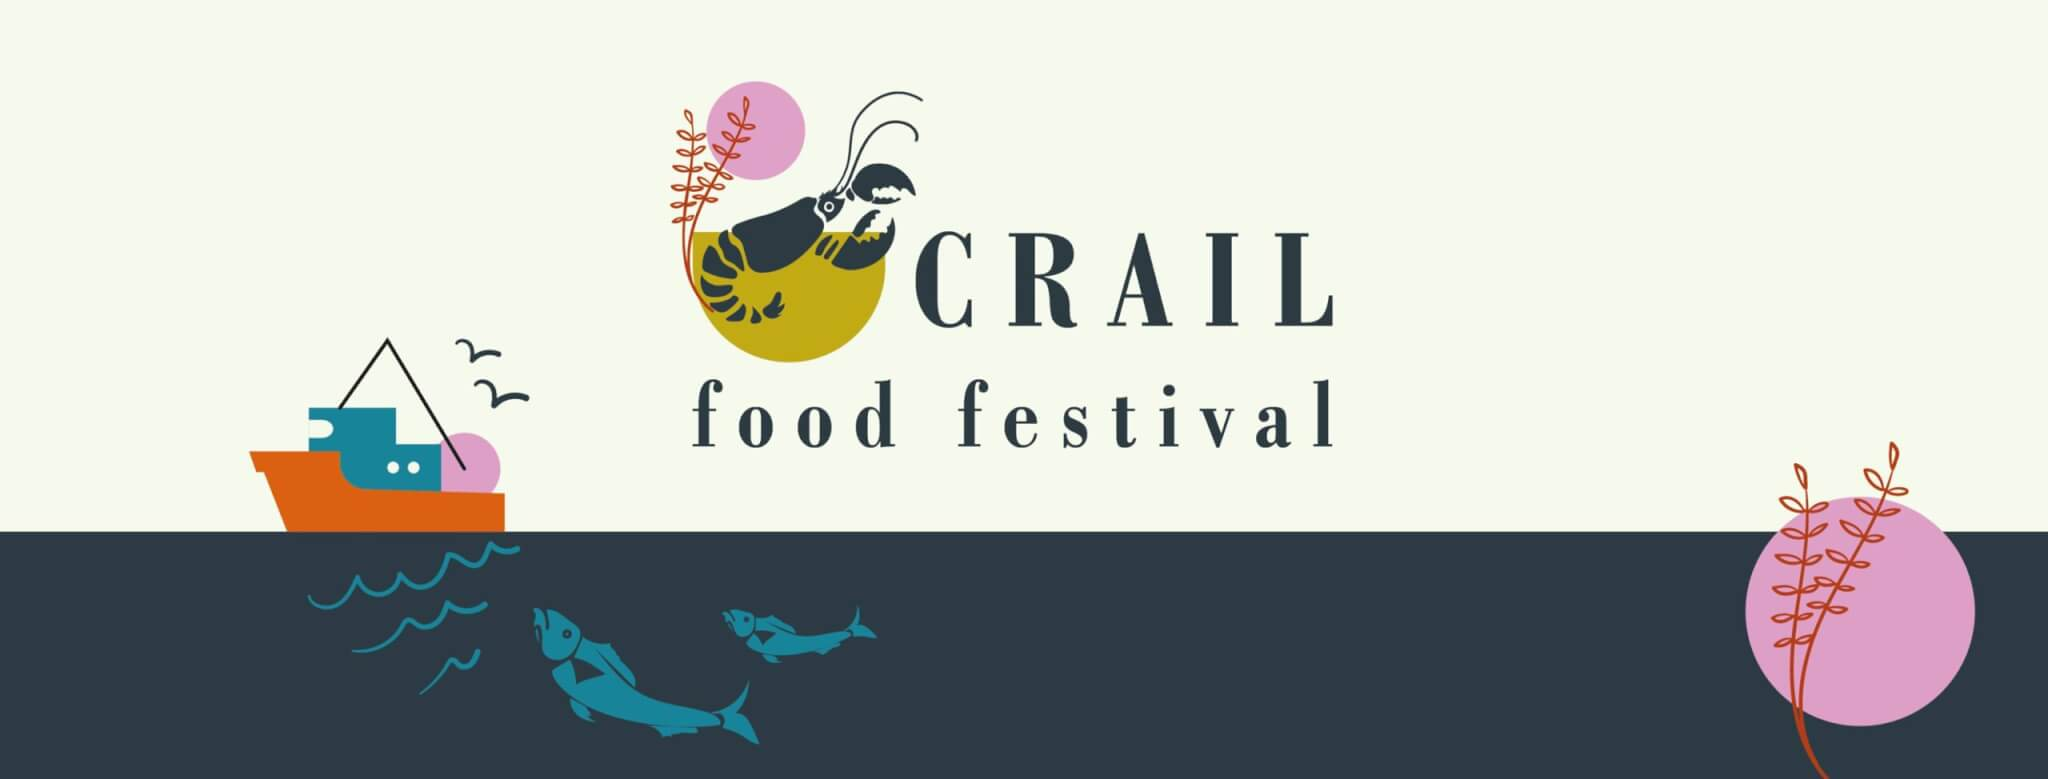 The Crail Food Festival will return this summer from 4th – 6th June.